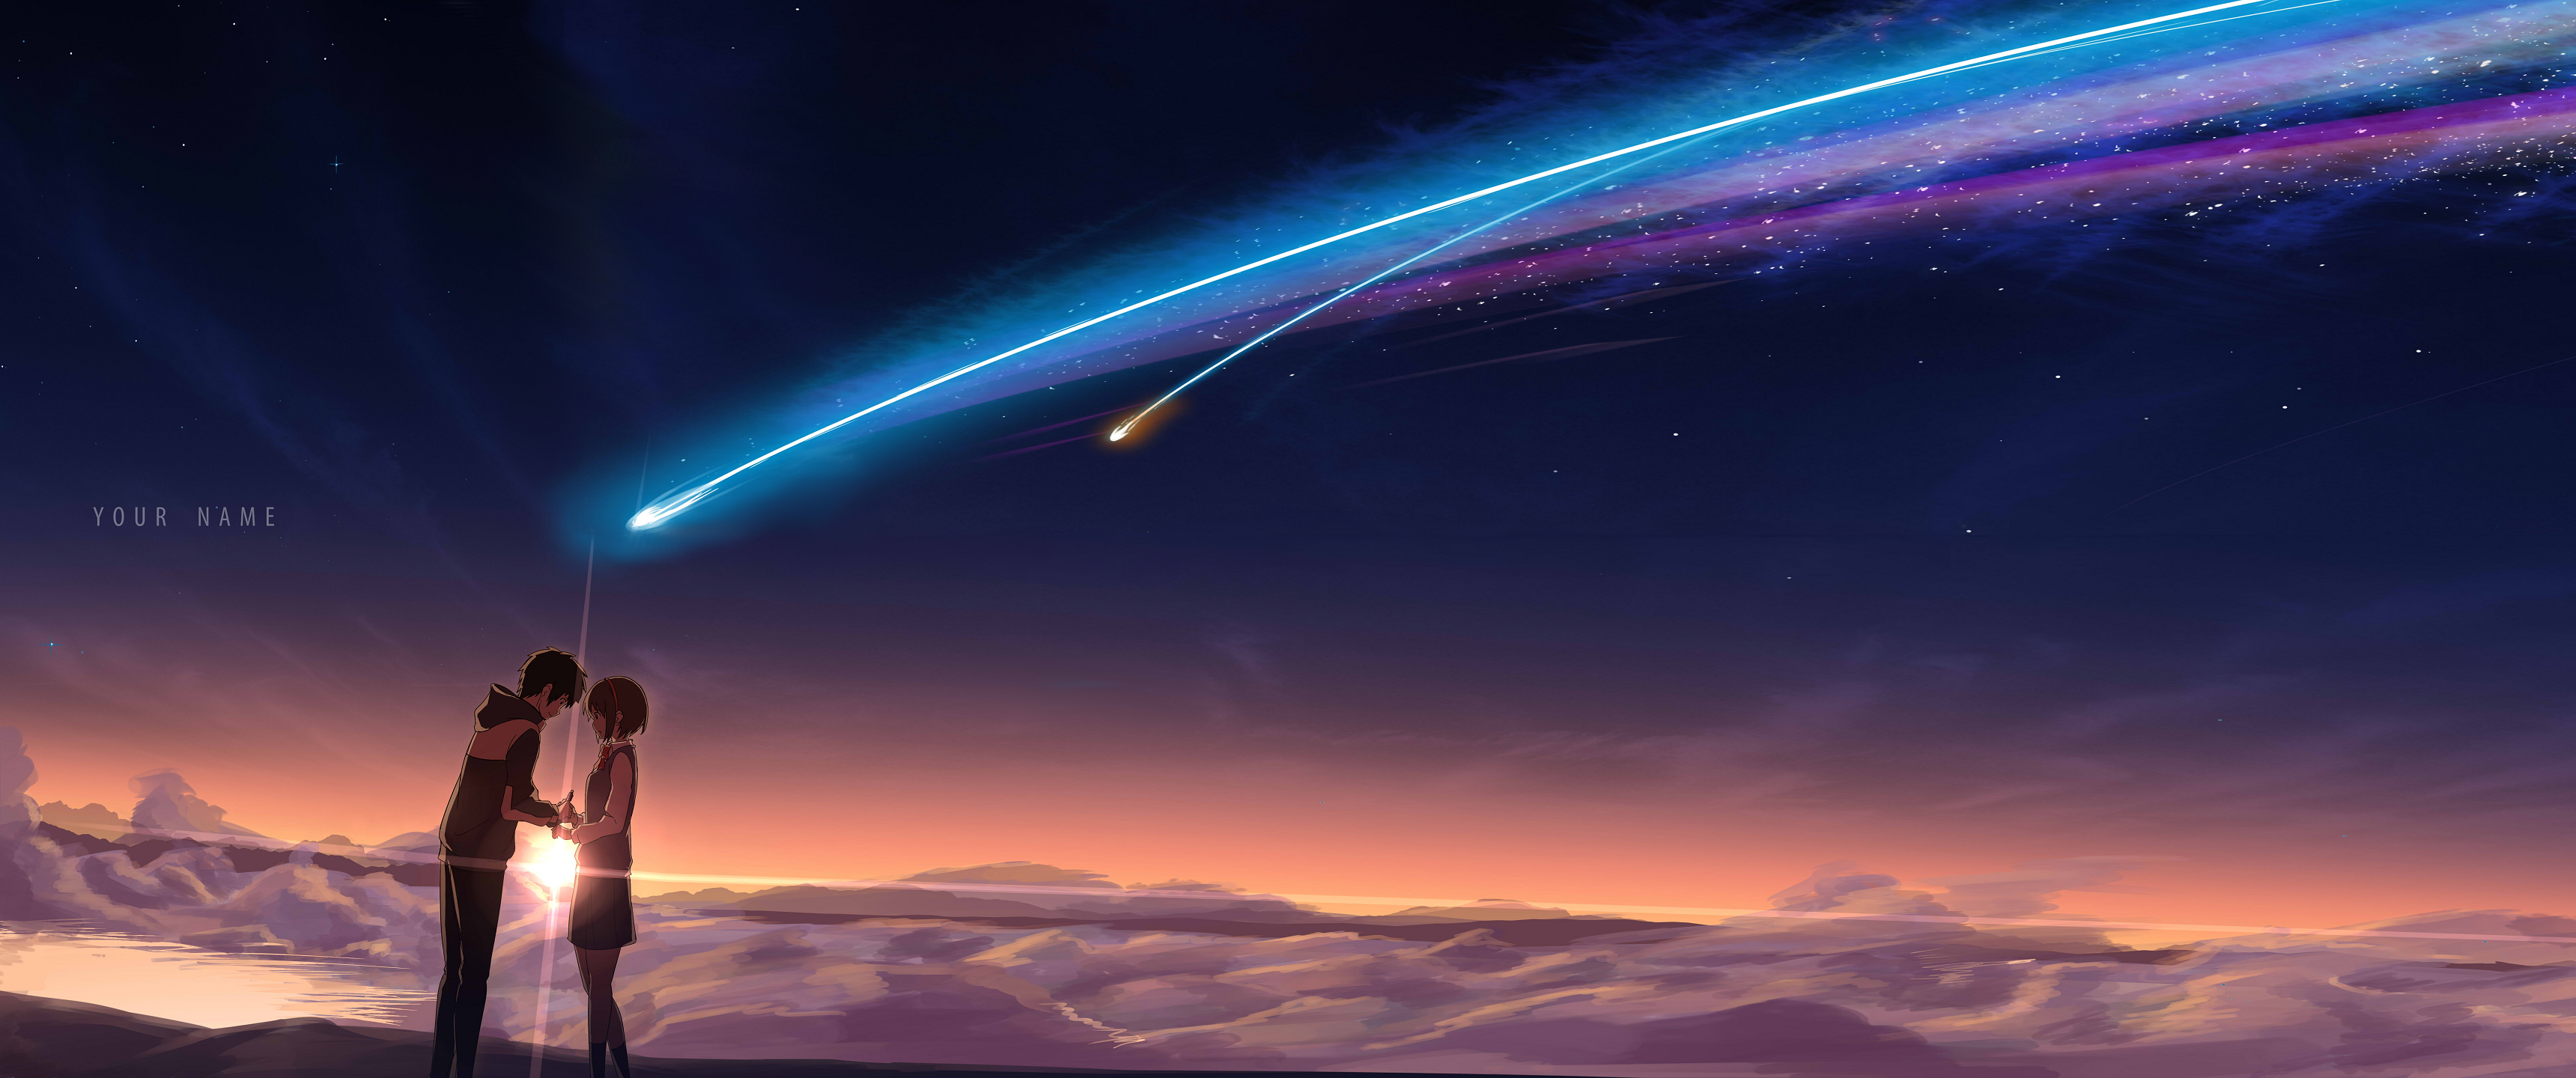 Your Name Anime Aesthetic Wallpapers - Wallpaper Cave